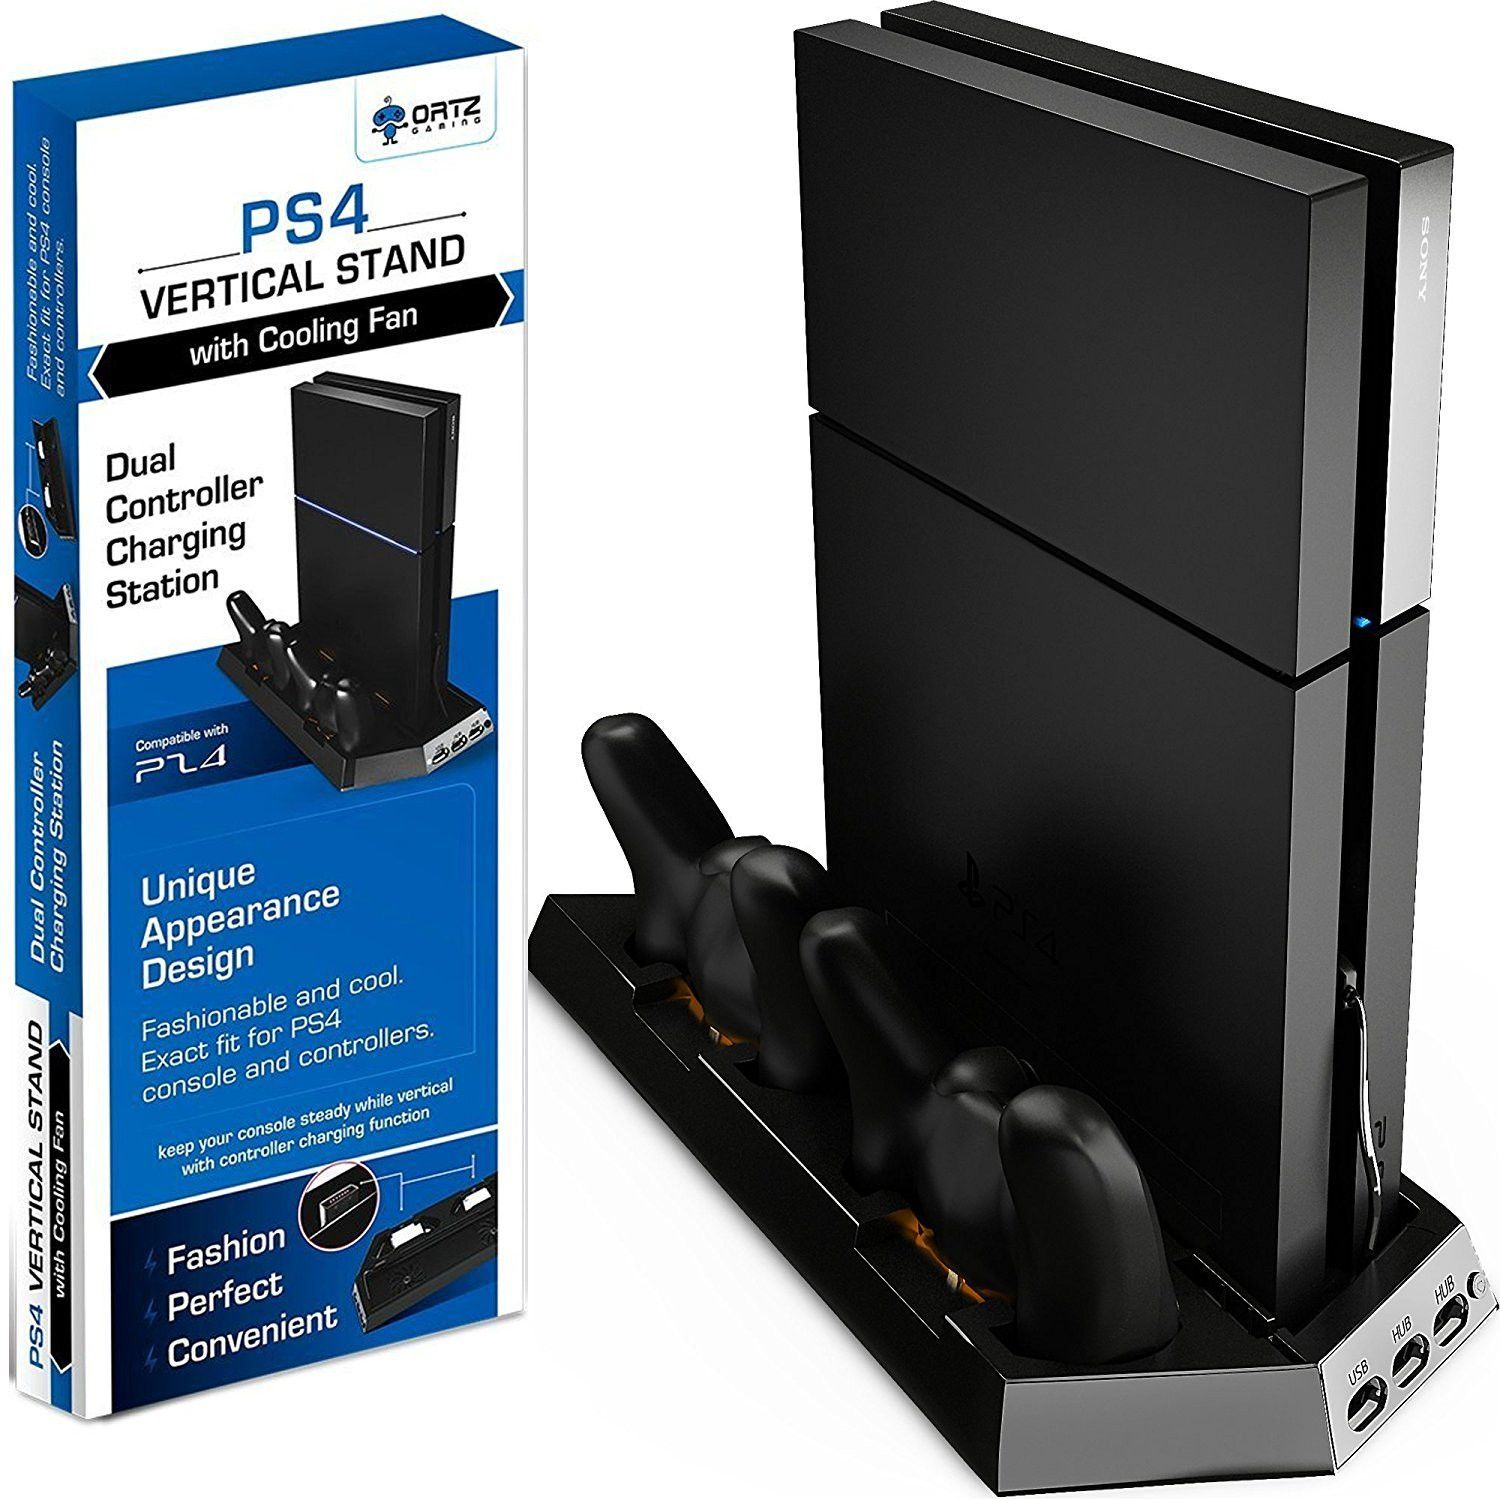 Ortz Ps4 Vertical Stand With Cooling Fan Playstation 4 Console